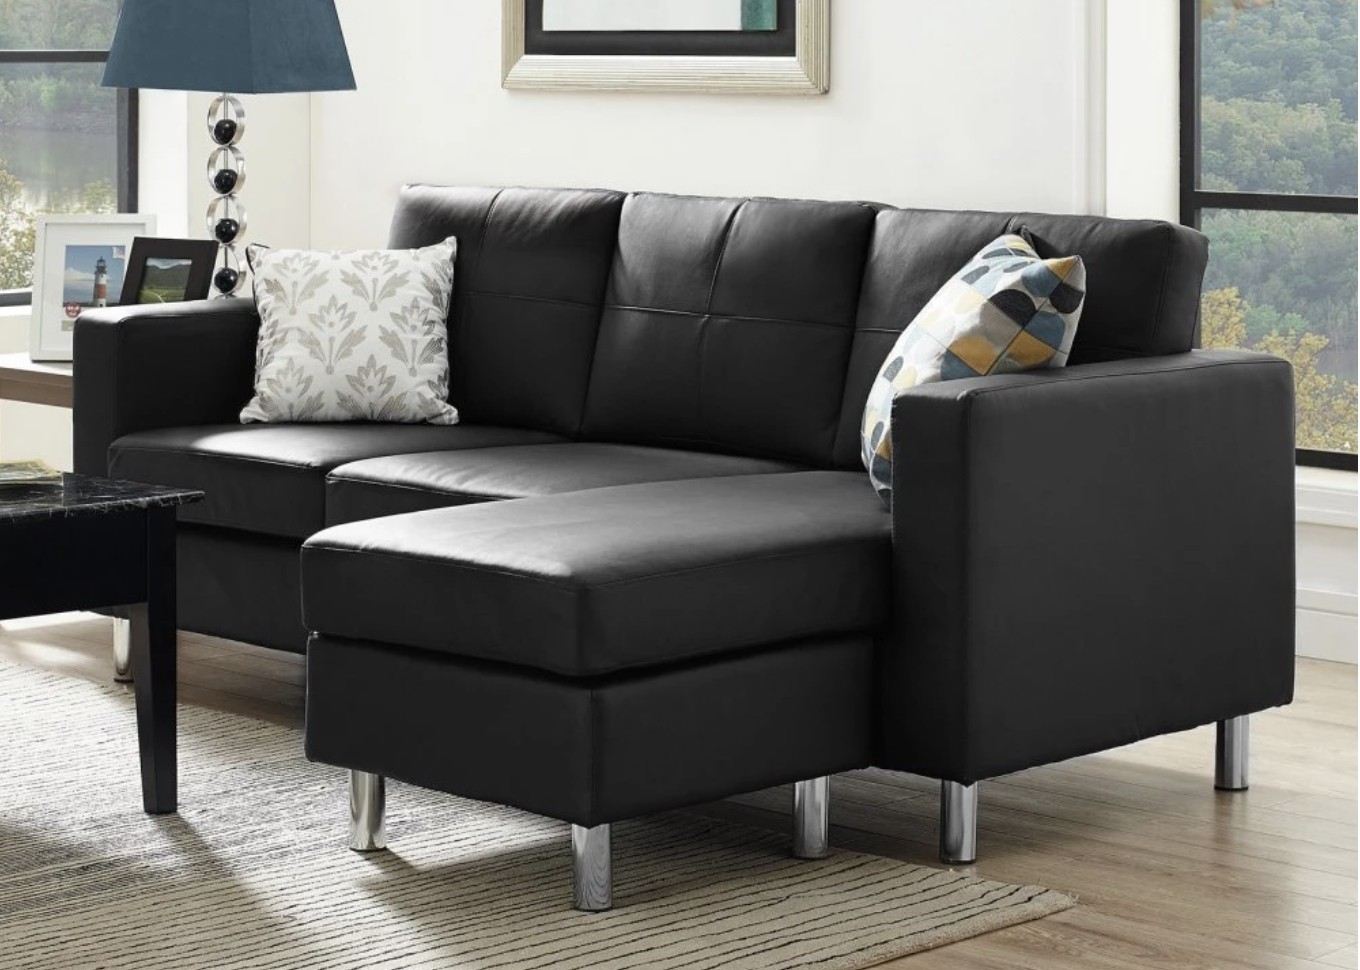 Newest 75 Modern Sectional Sofas For Small Spaces (2018) Inside 80X80 Sectional Sofas (View 11 of 15)